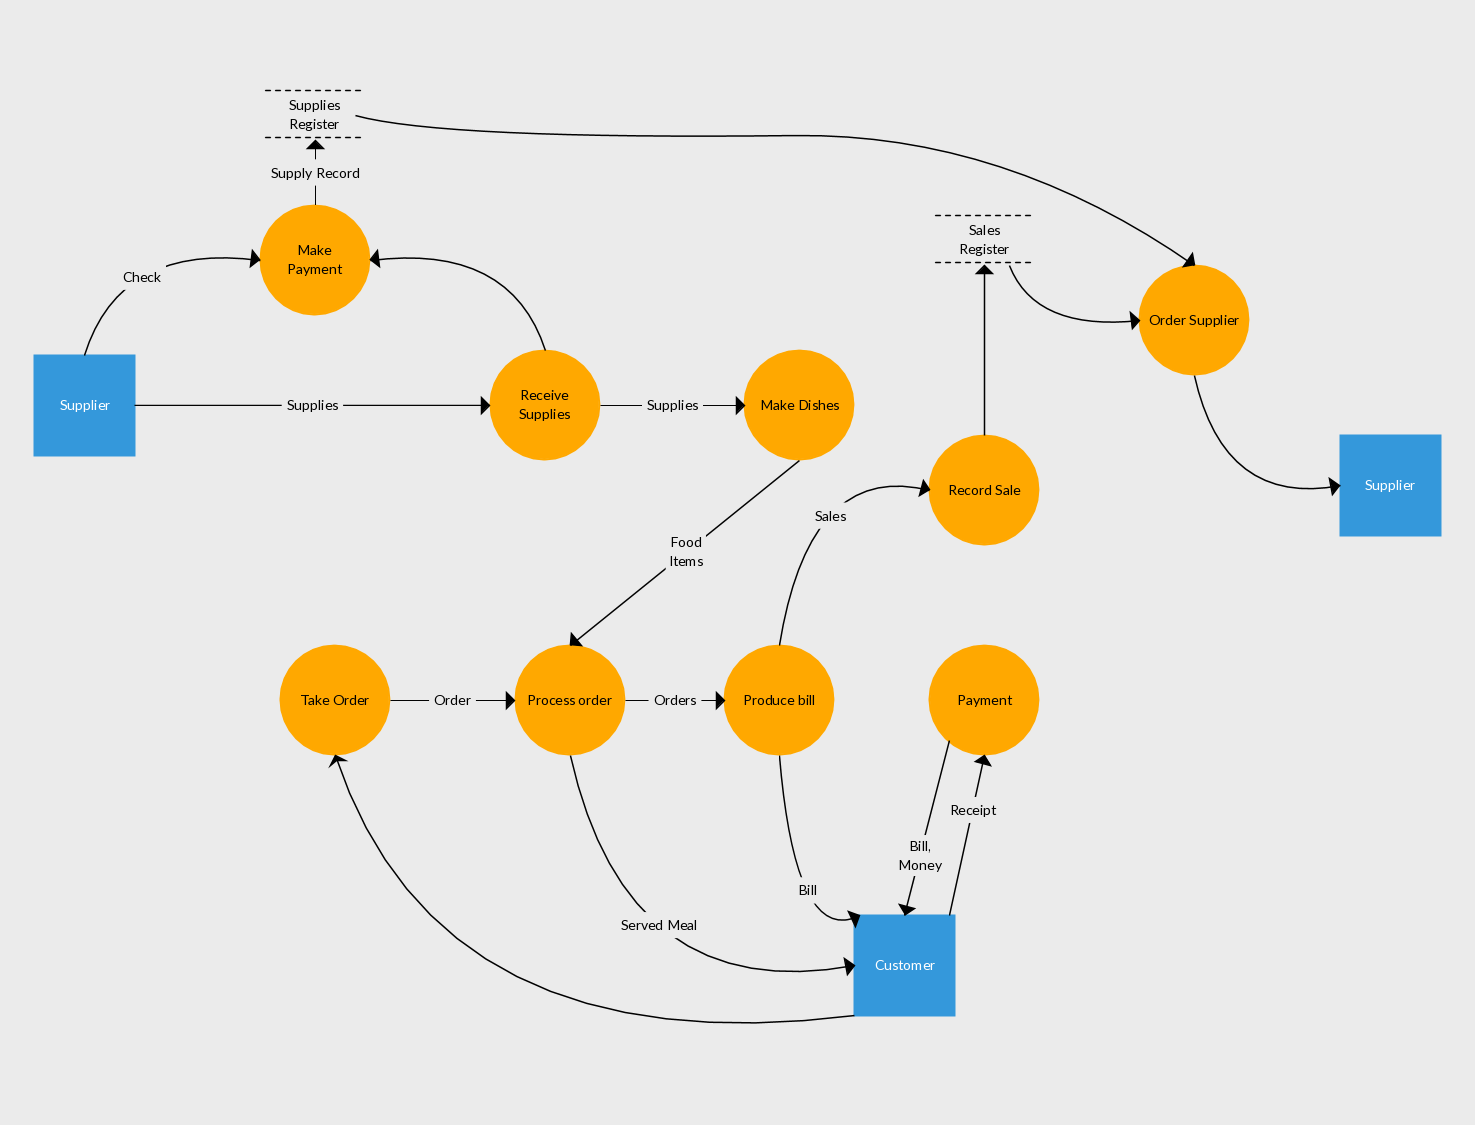 level 1 data flow diagram example of inventory management system  [ 1475 x 1125 Pixel ]